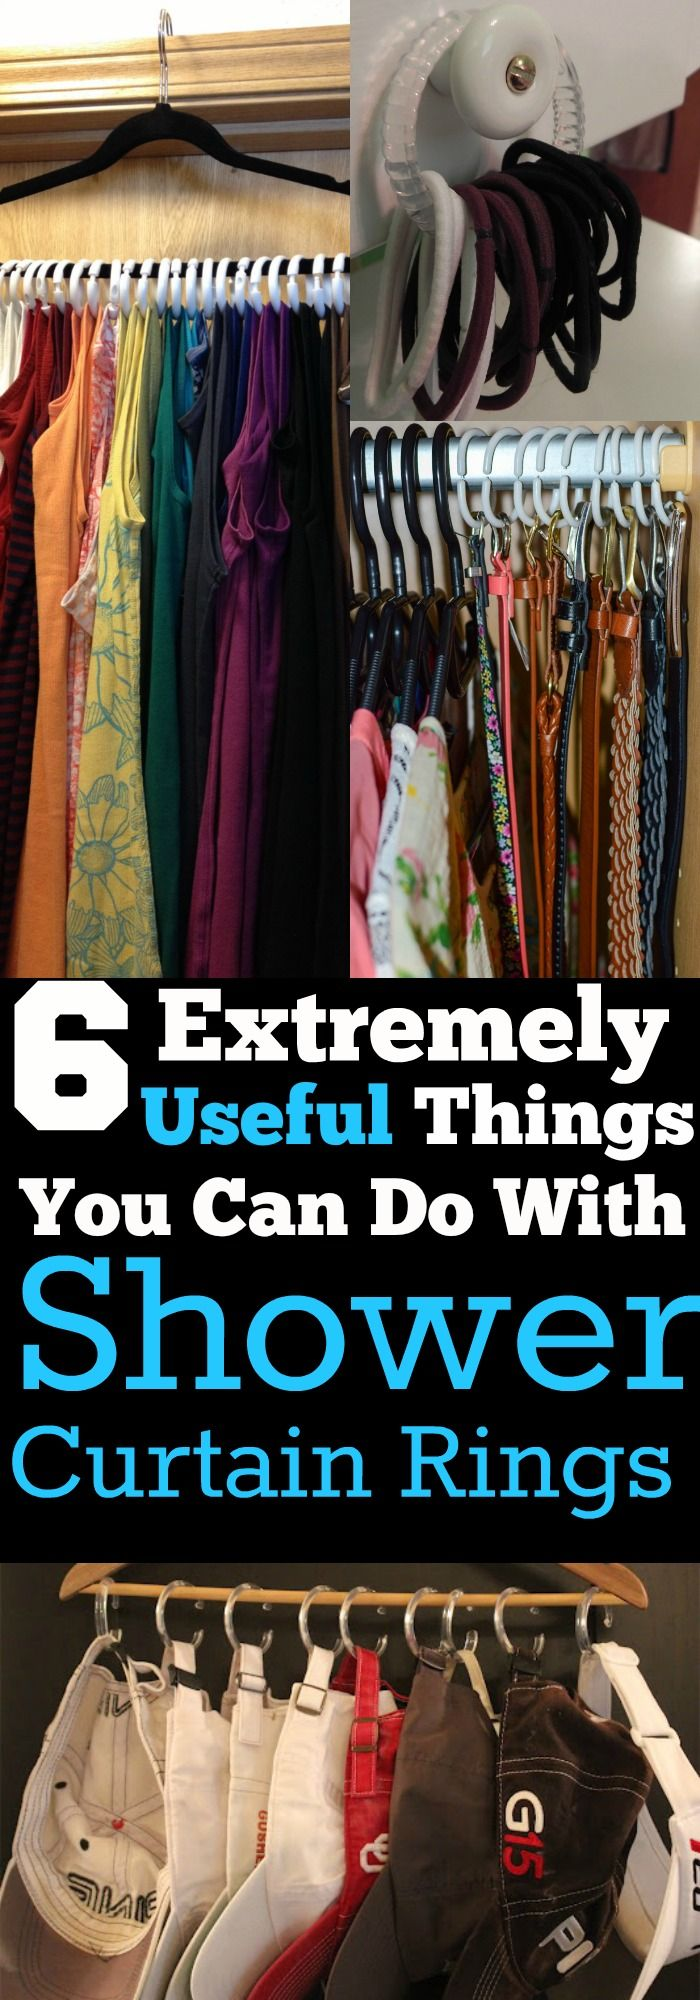 These shower curtain ring hacks have created so much space in my closet! They are super useful, and you have to try them all!